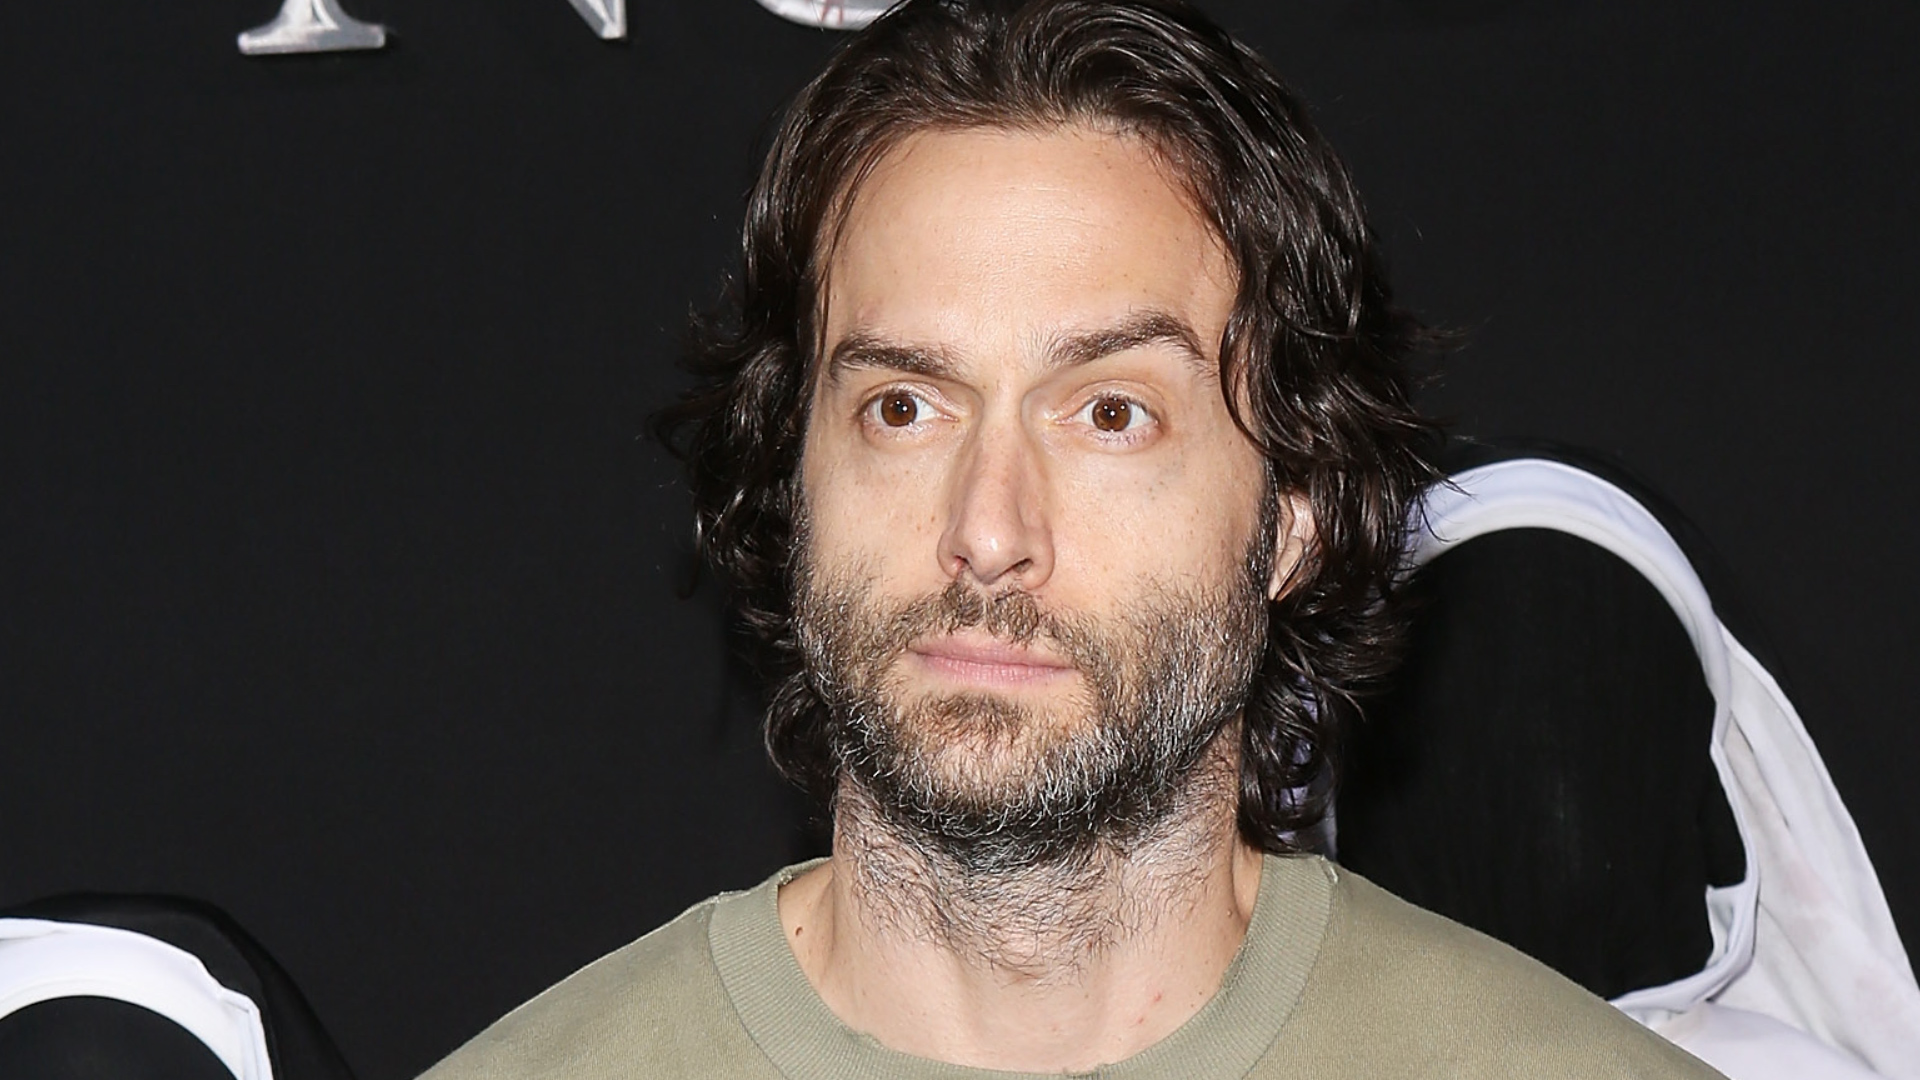 Comedian Chris D'Elia Accused Of Sexually Harassing Underage Girls